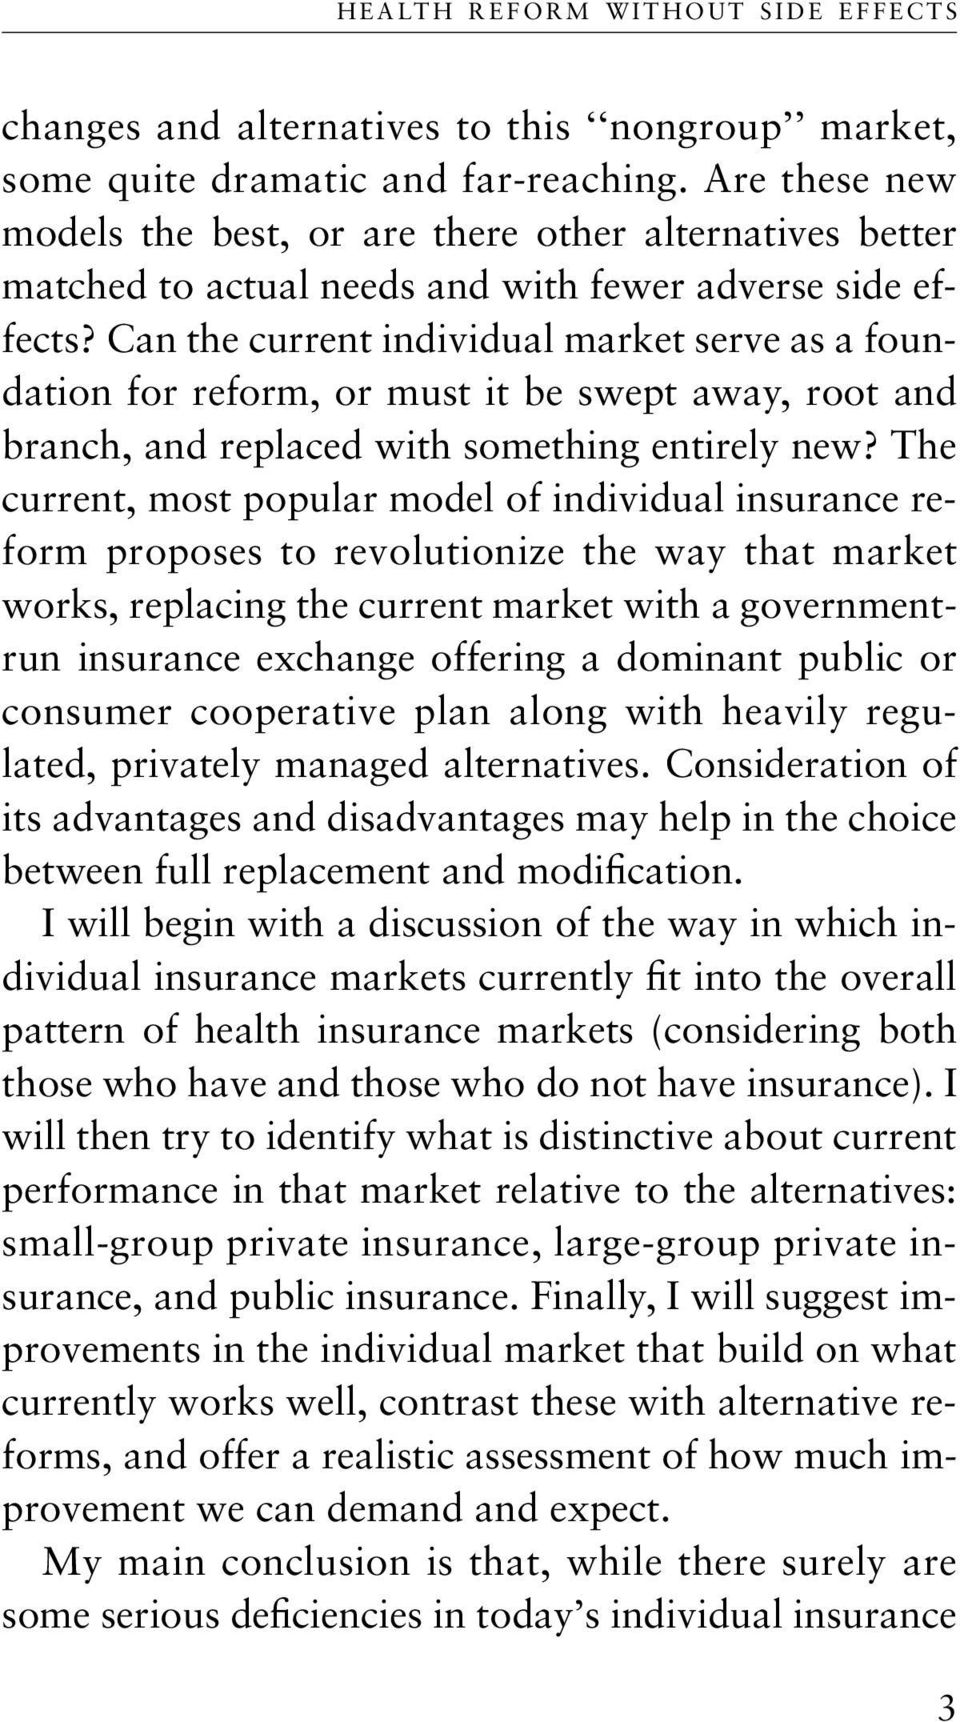 Can the current individual market serve as a foundation for reform, or must it be swept away, root and branch, and replaced with something entirely new?